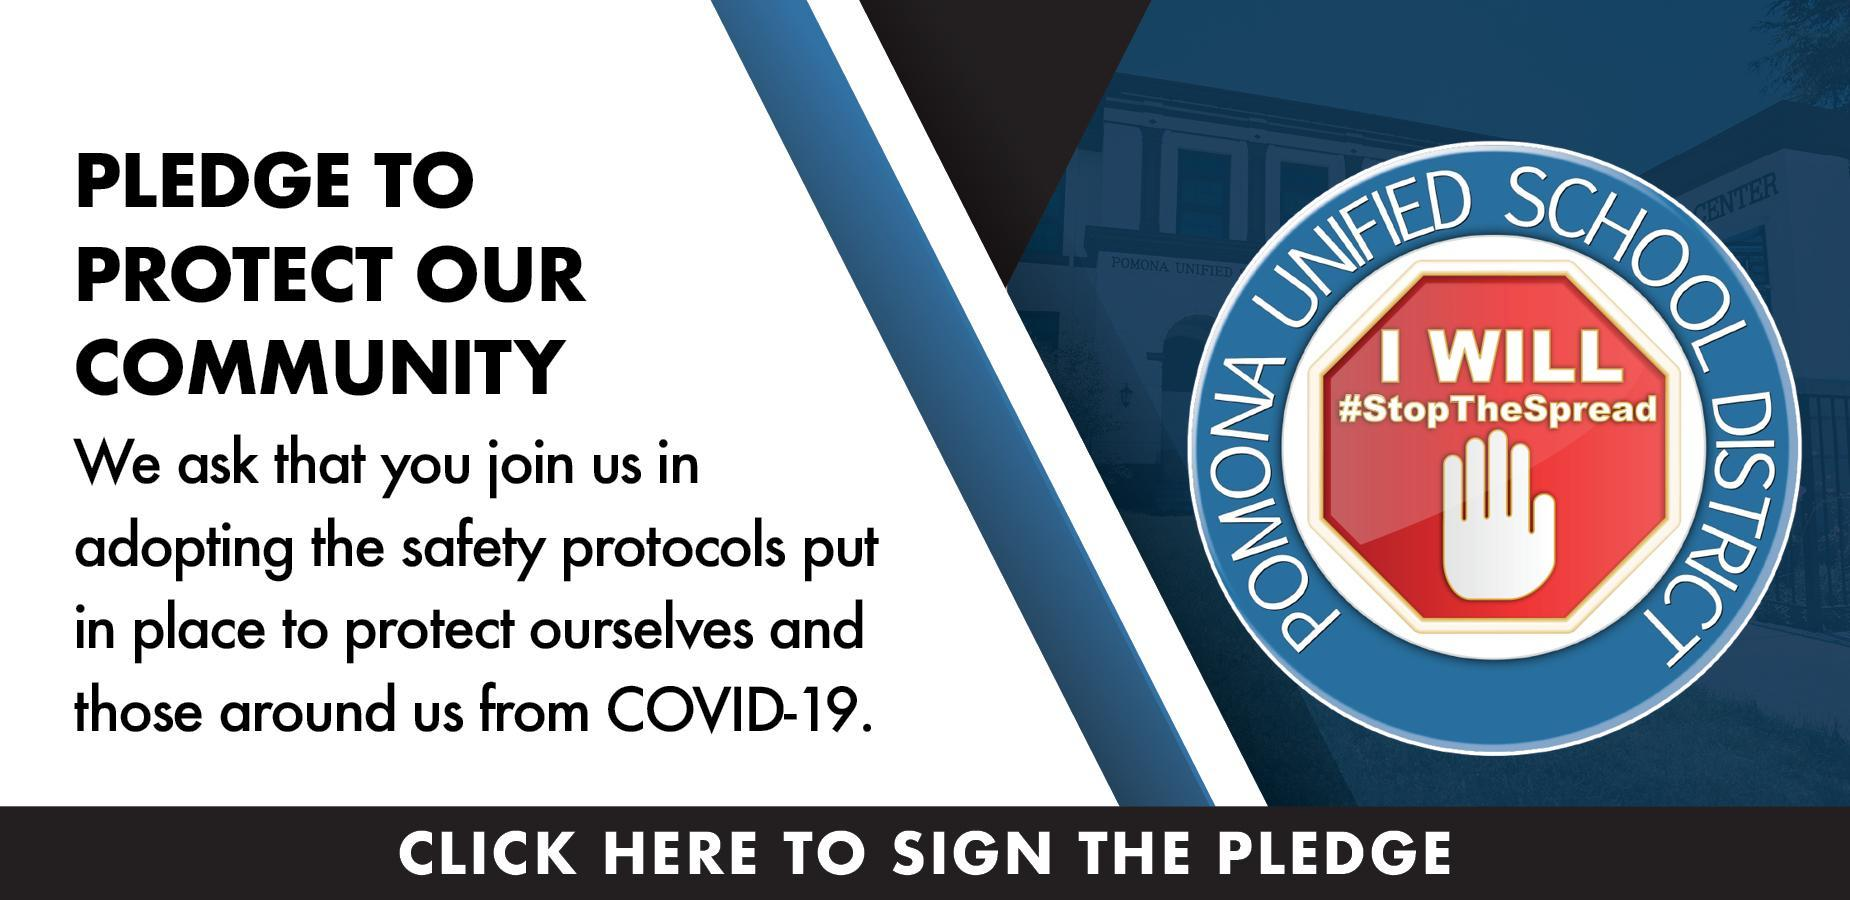 Pledge to stop the spread at https://proudtobe.pusd.org/apps/form/form.POMONA.sgxvhLK.1lJ?_=1605642693594